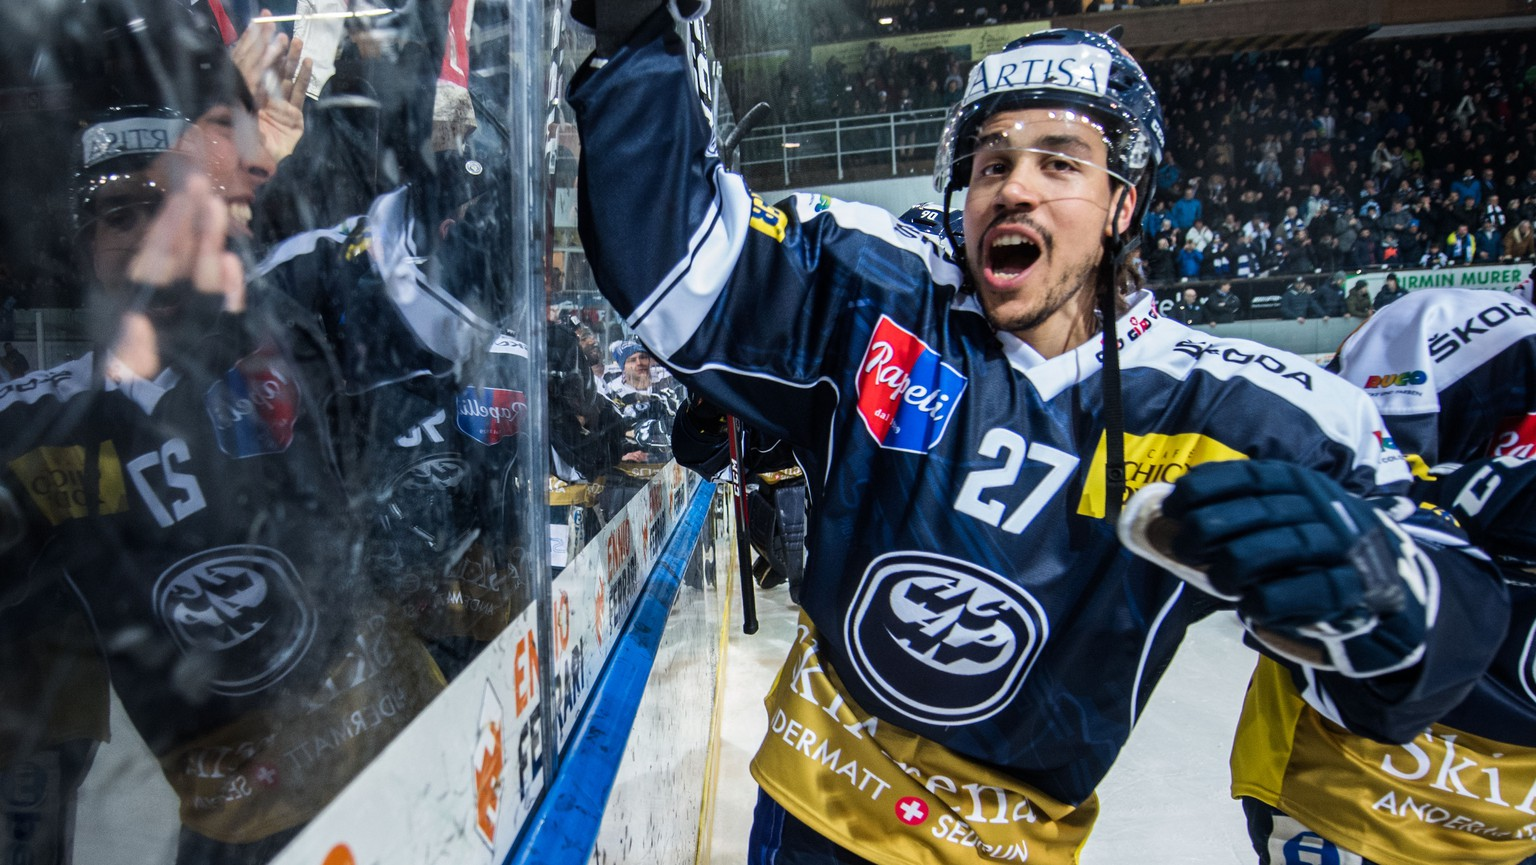 Ambri's player Samuel Guerra celebrate the victory at the end of the game game of National League Swiss Championship 2018/19 between HC Ambri Piotta and HC Lugano, at the ice stadium Valascia in Ambri, Switzerland, Friday, February 15, 2019. (KEYSTONE/Ti-Press/Samuel Golay)